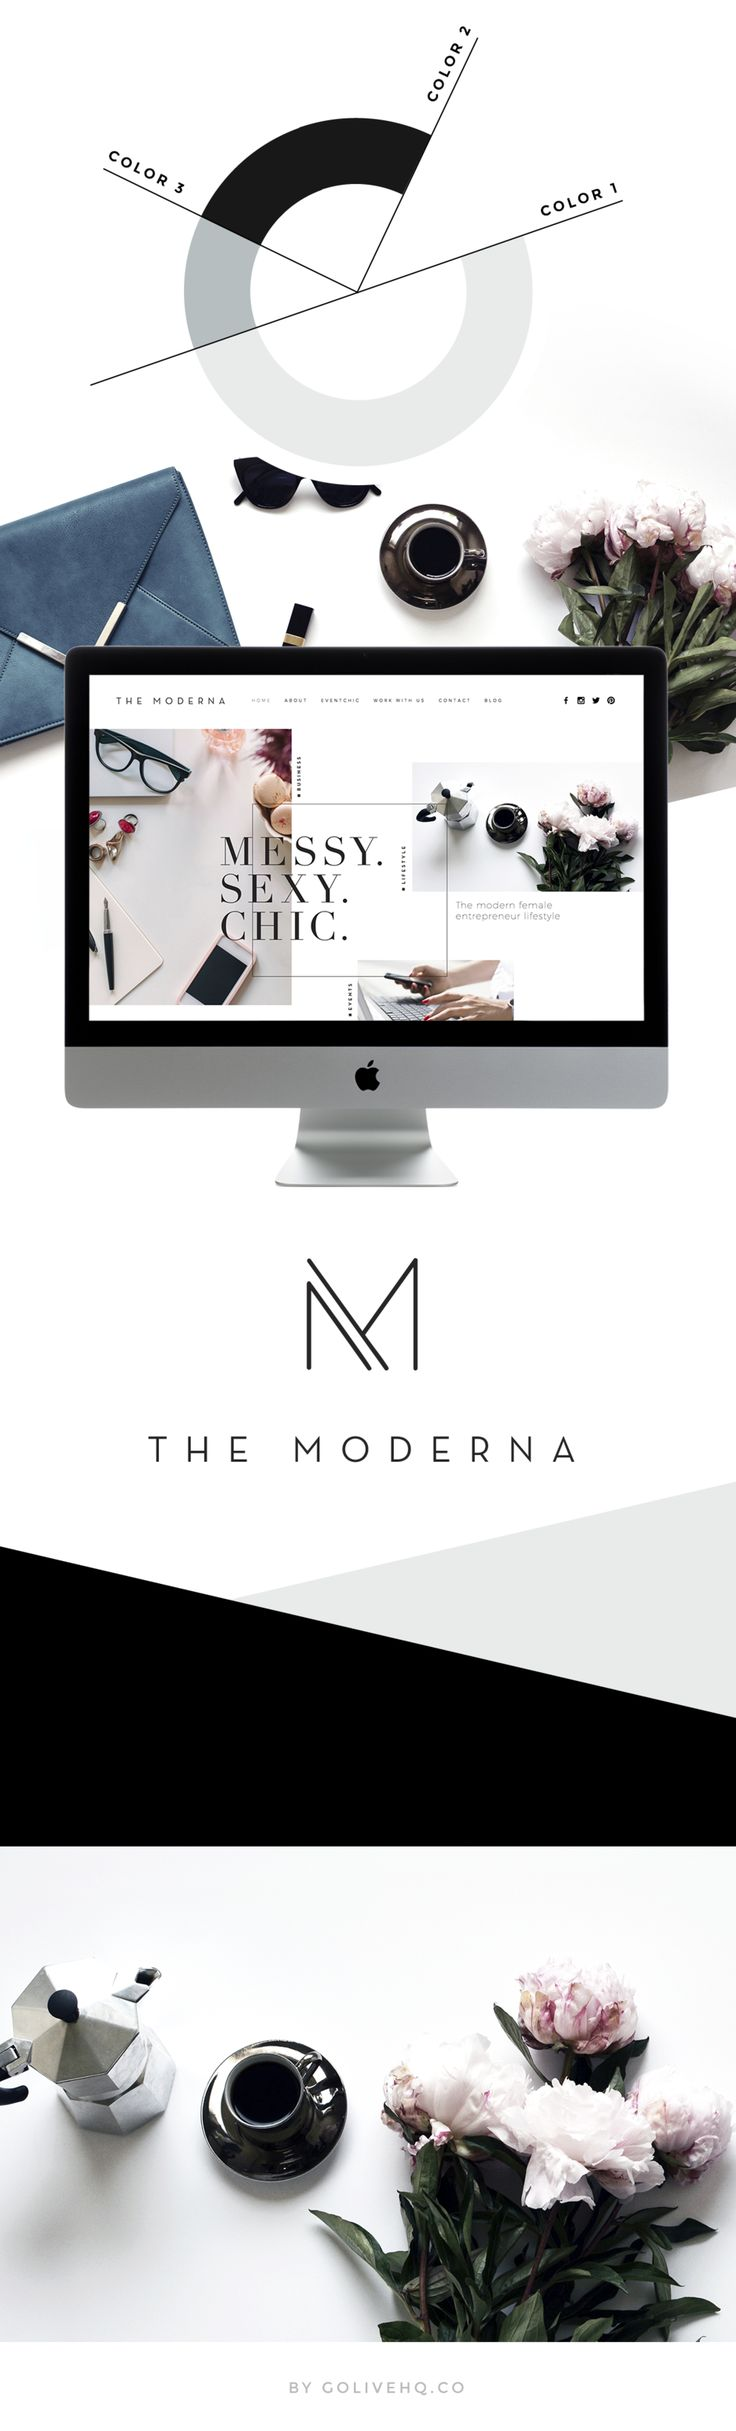 modern squarespace website design | | by GOLIVEHQ.CO